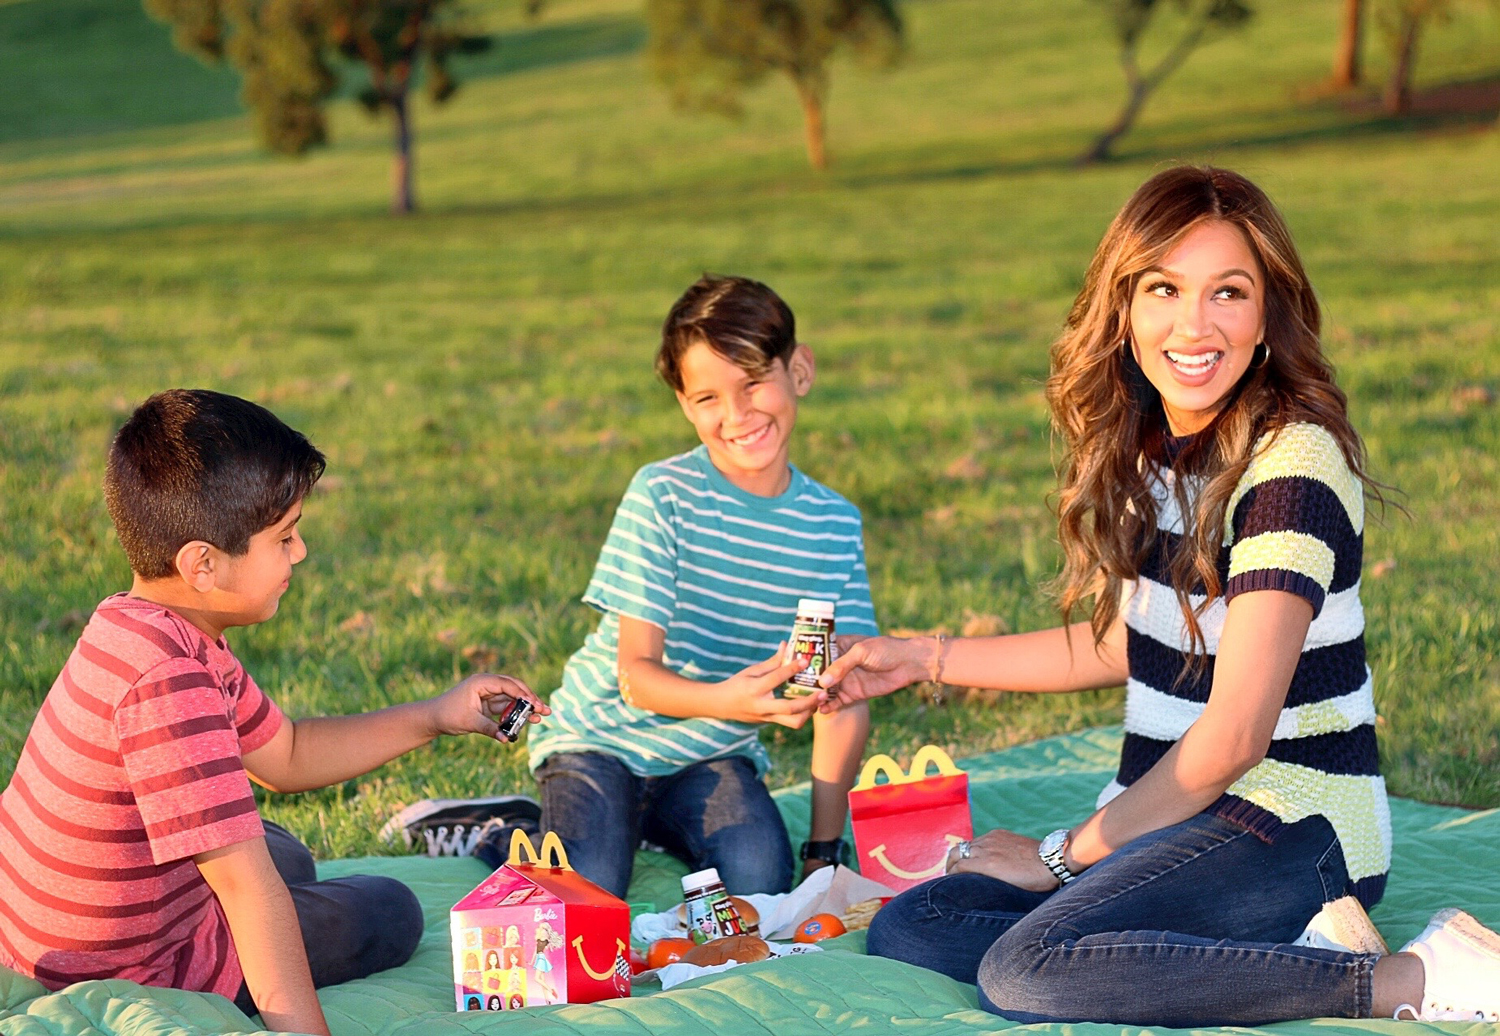 Happy-Meal_family-time-smiles_REV-1